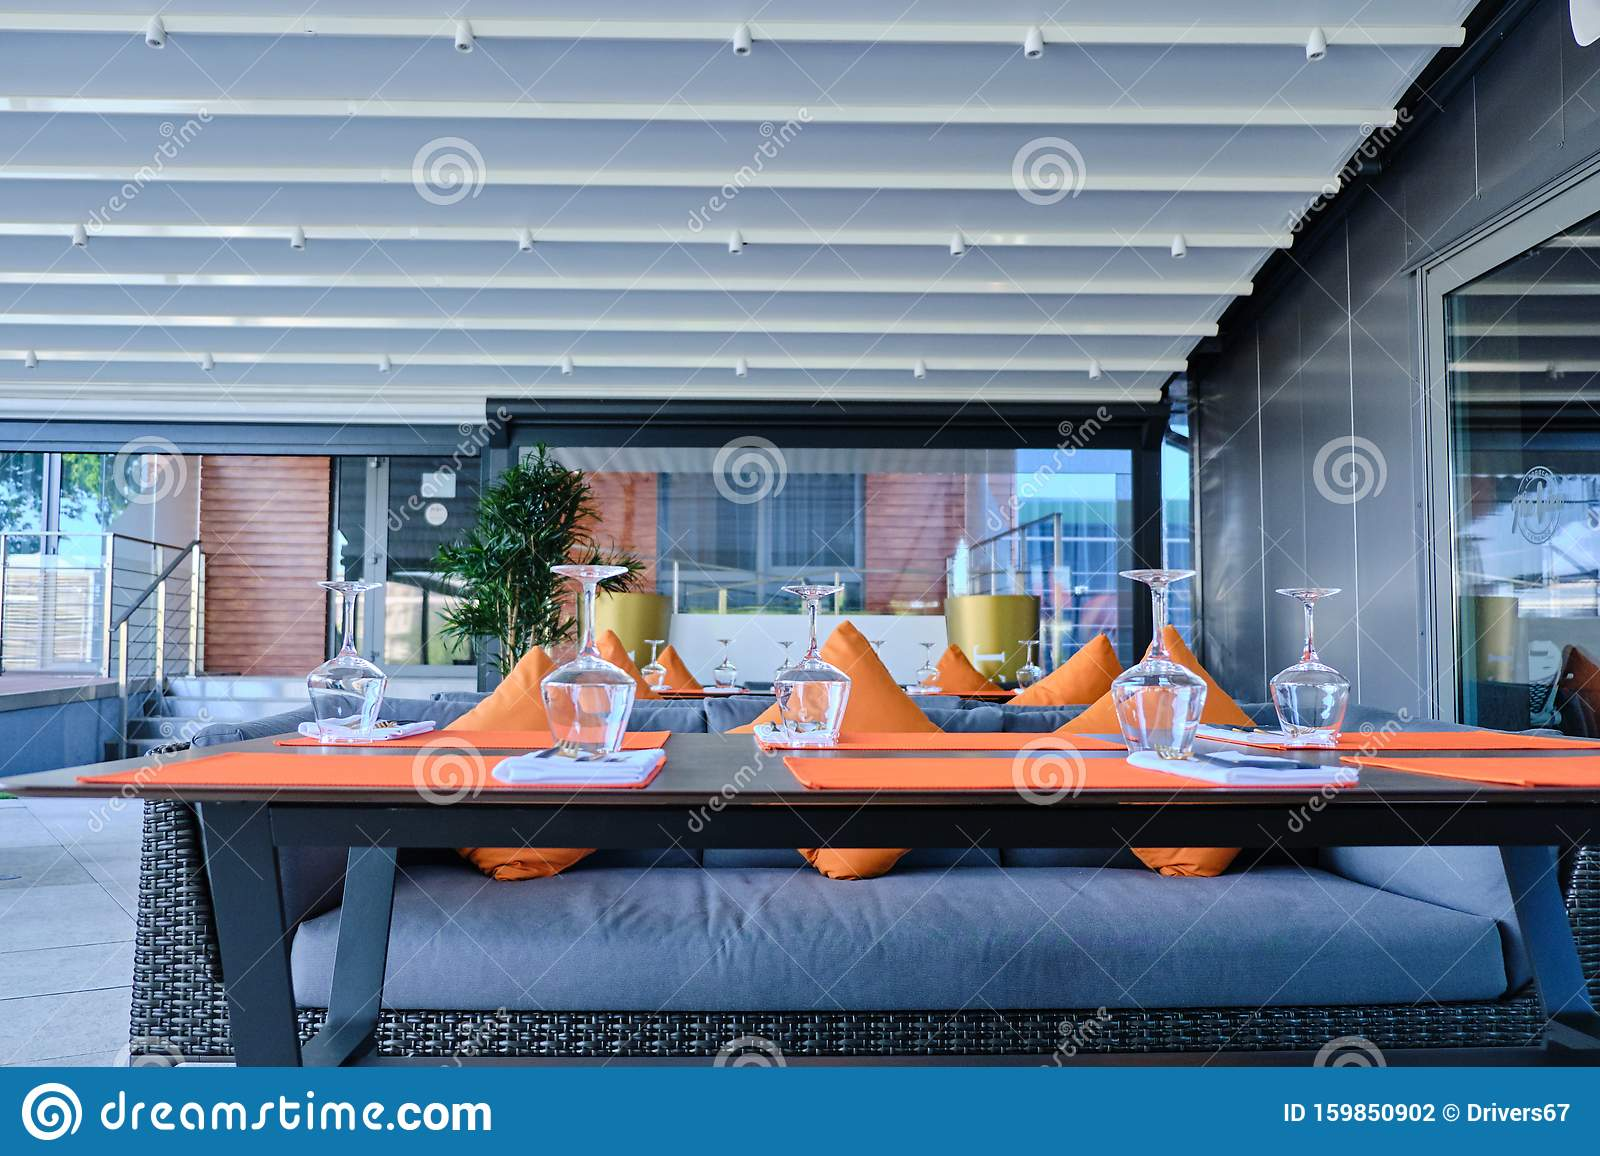 139 934 Summer Interior Photos Free Royalty Free Stock Photos From Dreamstime